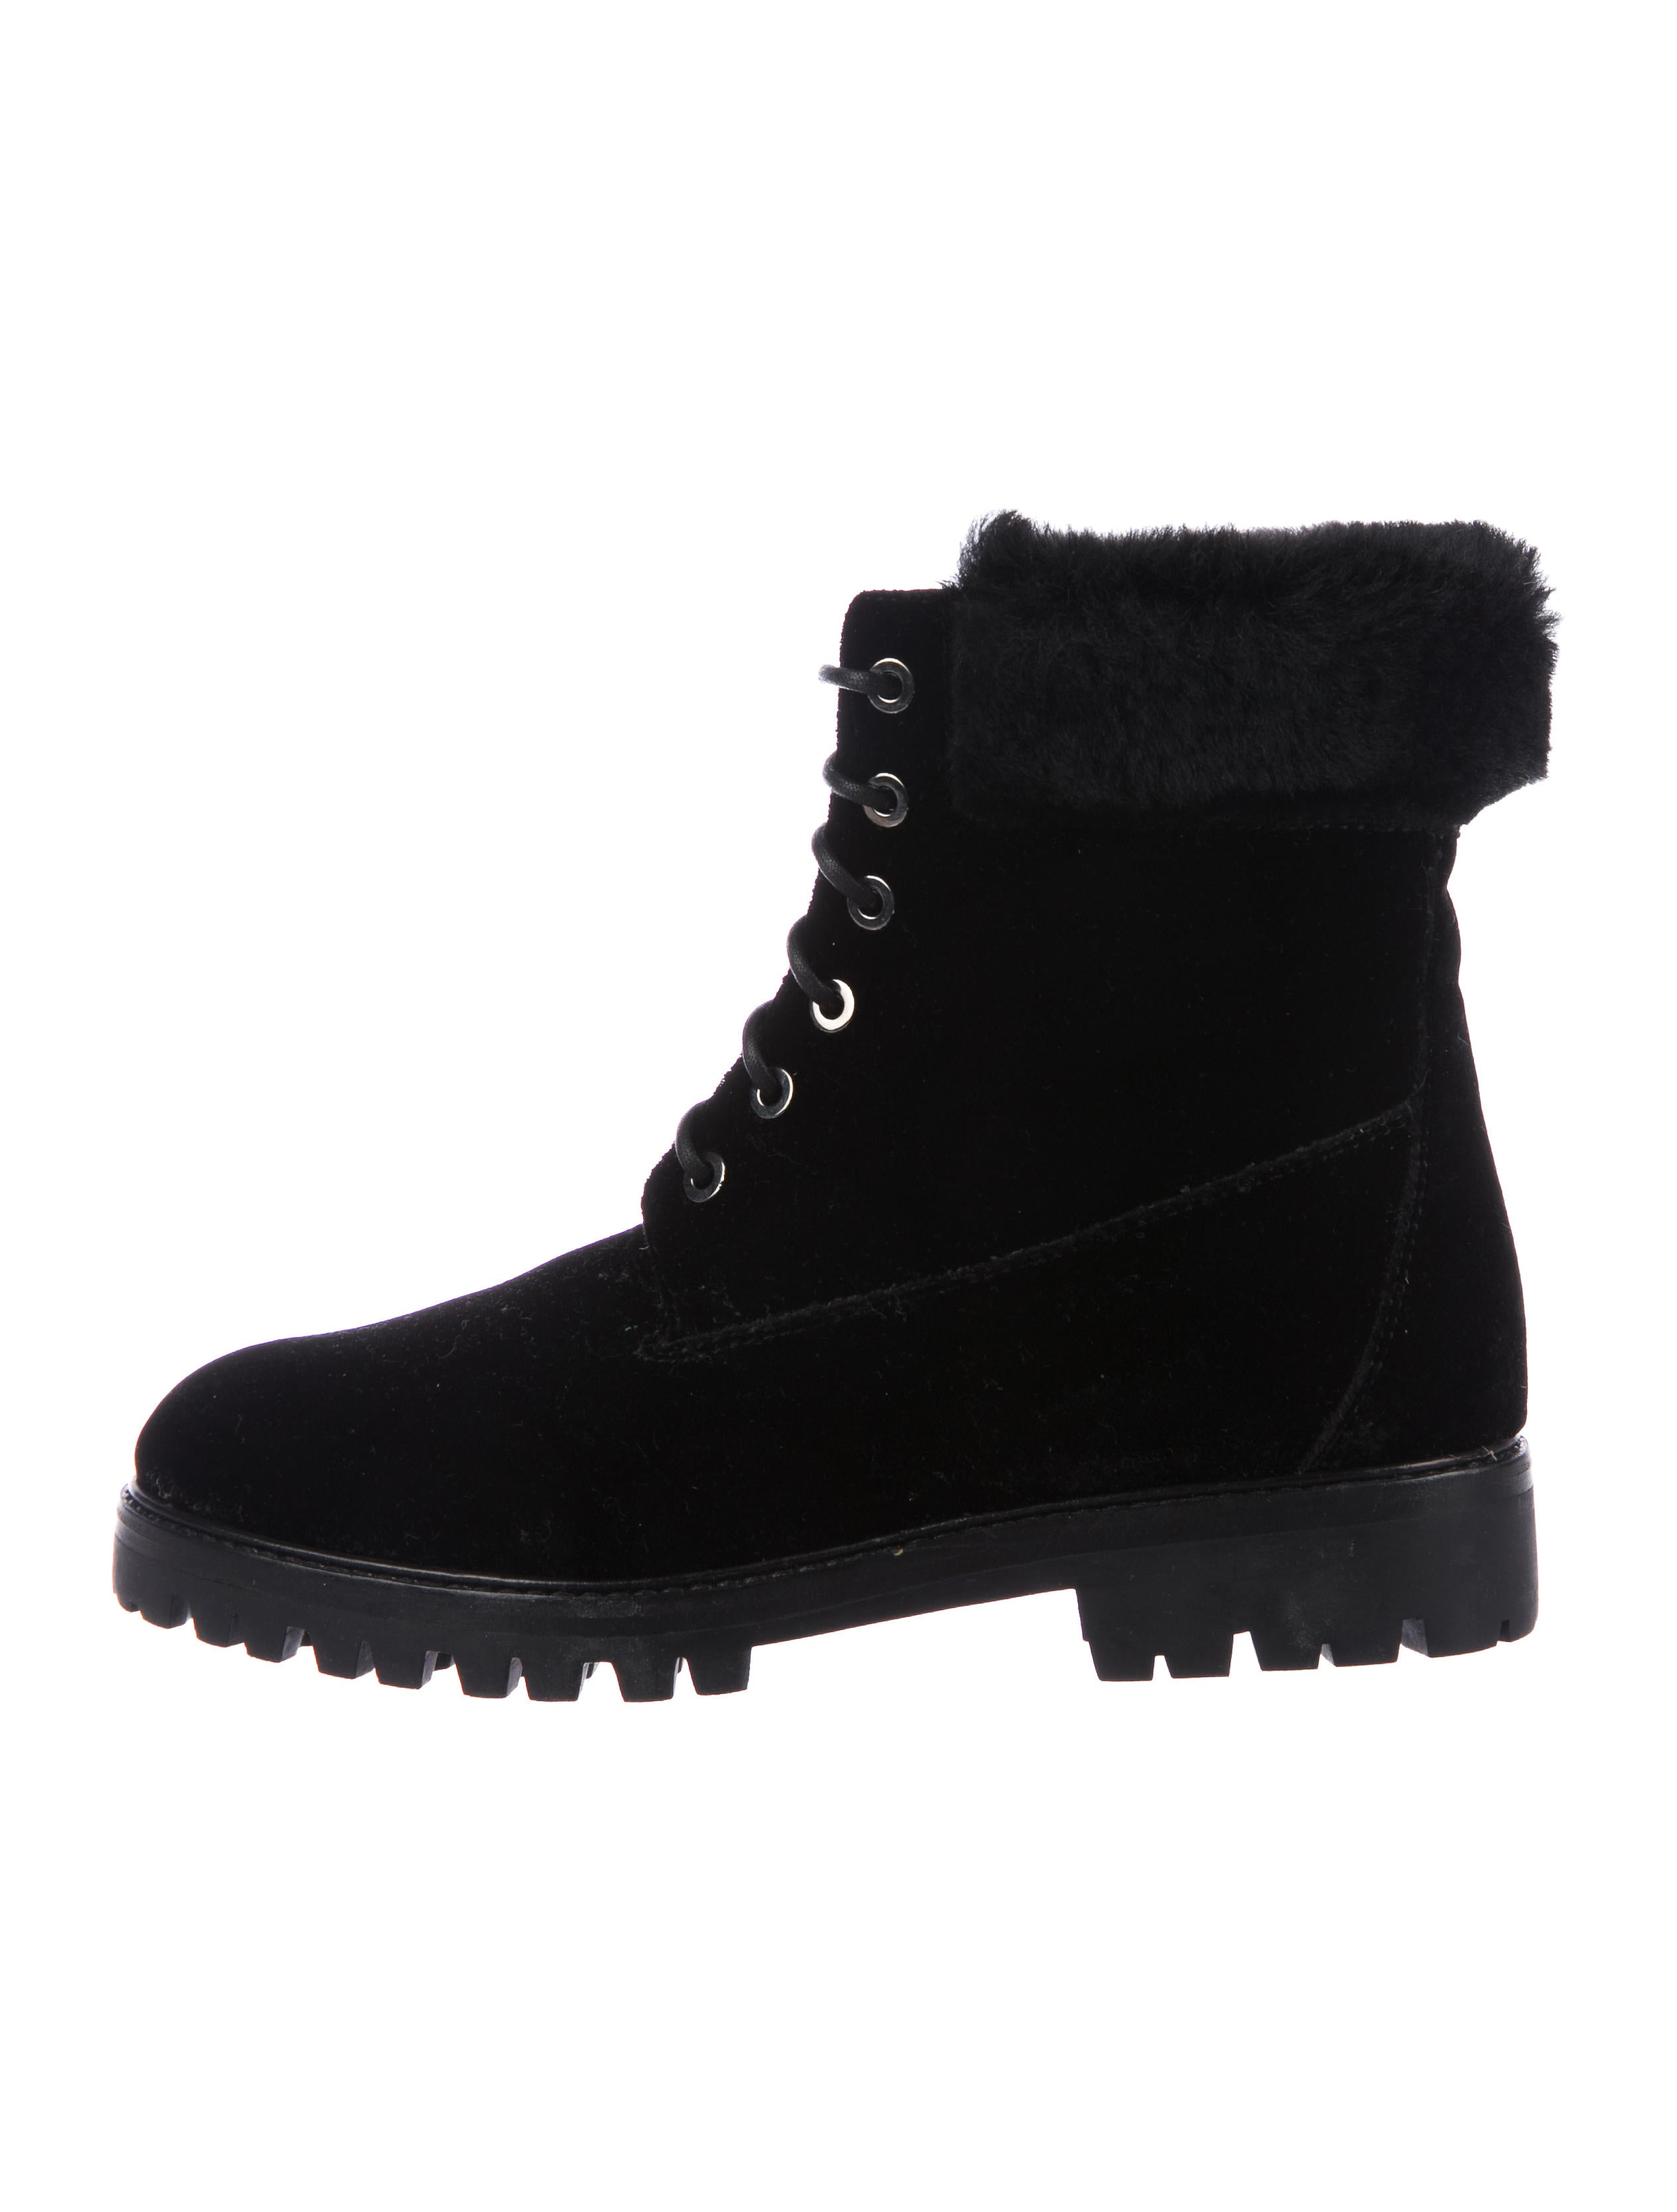 100% original cheap price Aquazzura 2018 Heilbrunner Combat Ankle Boots free shipping recommend cheap sale classic buy cheap eastbay free shipping the cheapest 2s8l8